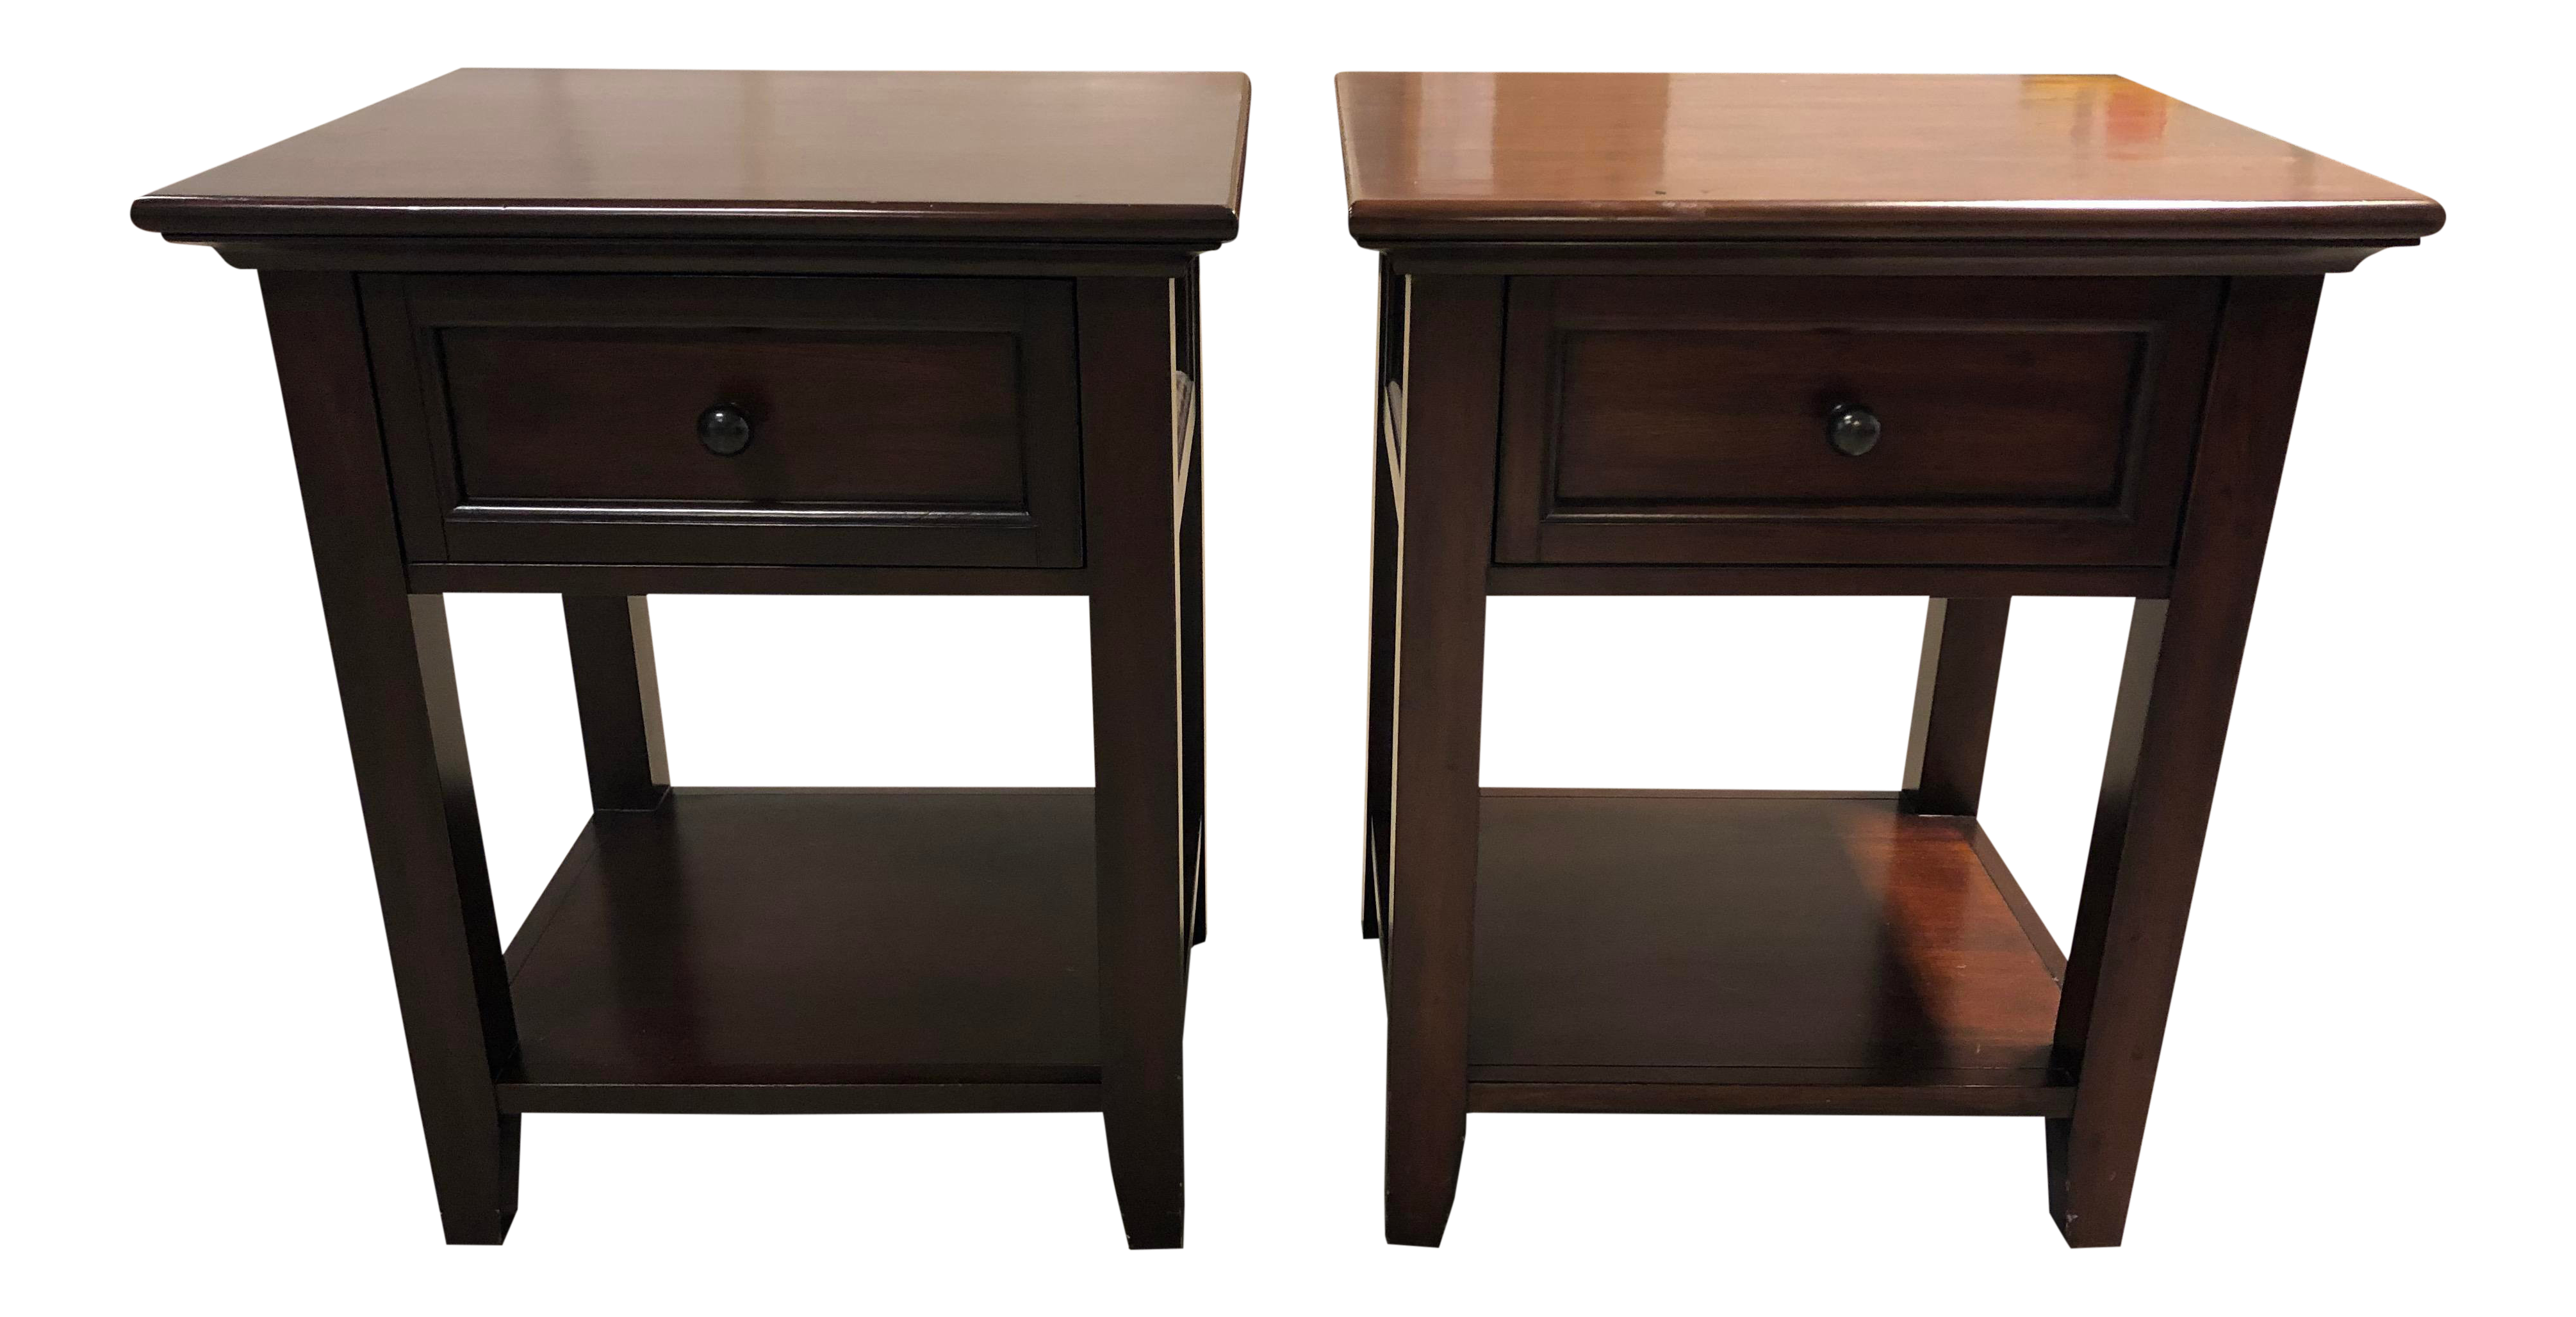 gently used pottery barn furniture off chairish hudson drawer nightstands pair rustic pedestal accent table round metal legs rope coffee drop leaf with chairs best bedside purple